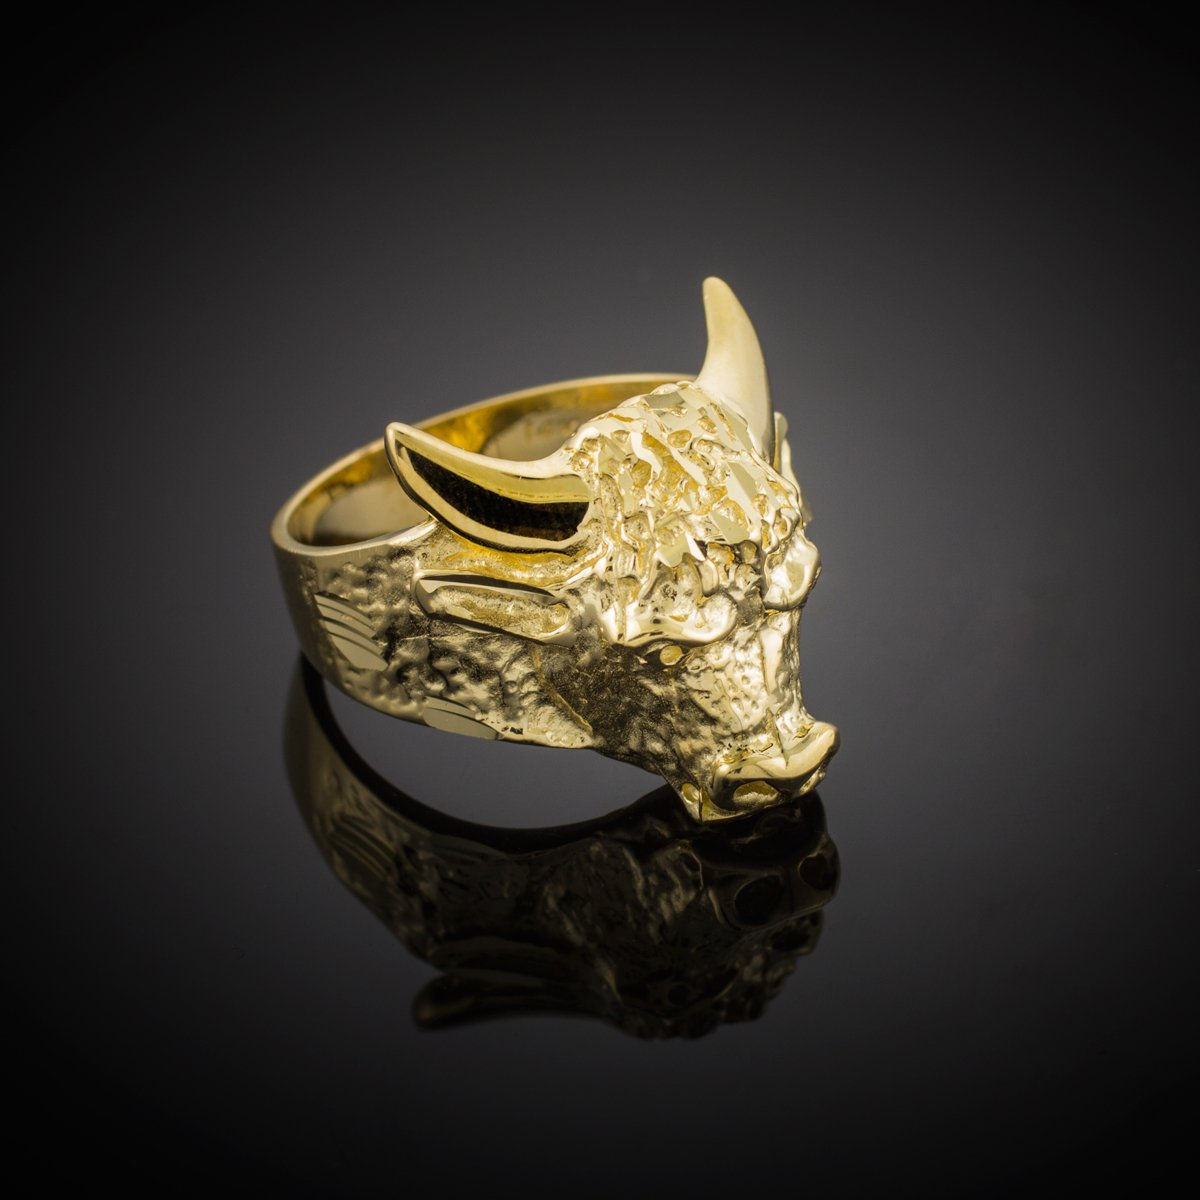 Men's Polished 10k Yellow Gold Band Taurus Bull Ring (Large) (Size 9.5) by Men's Fine Jewelry (Image #2)